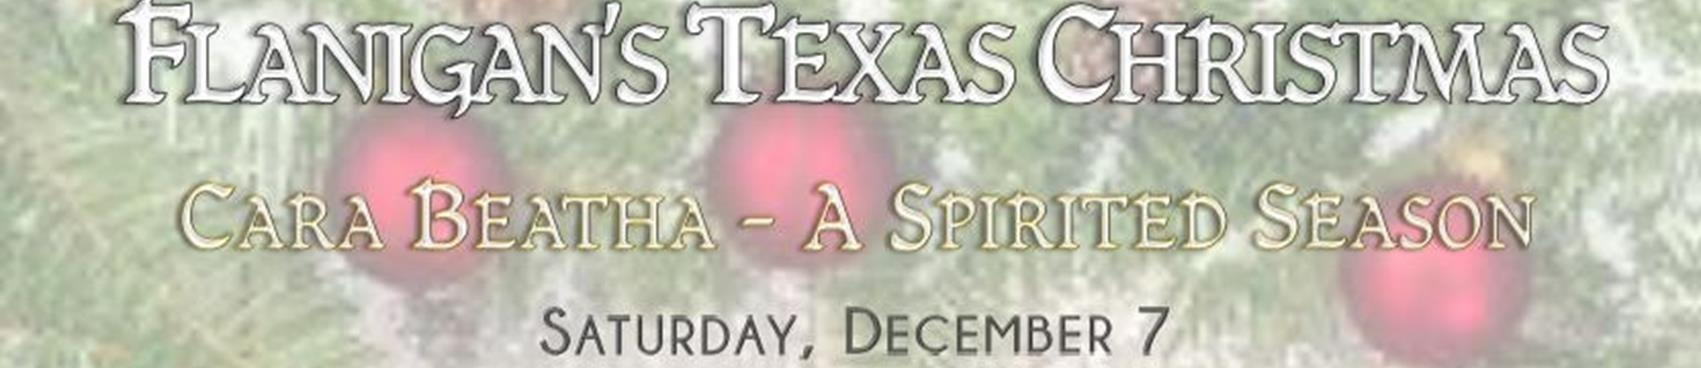 Purchase Tickets to Flanigan's Texas Christmas at Flanigan's Distillery & Winery on CellarPass